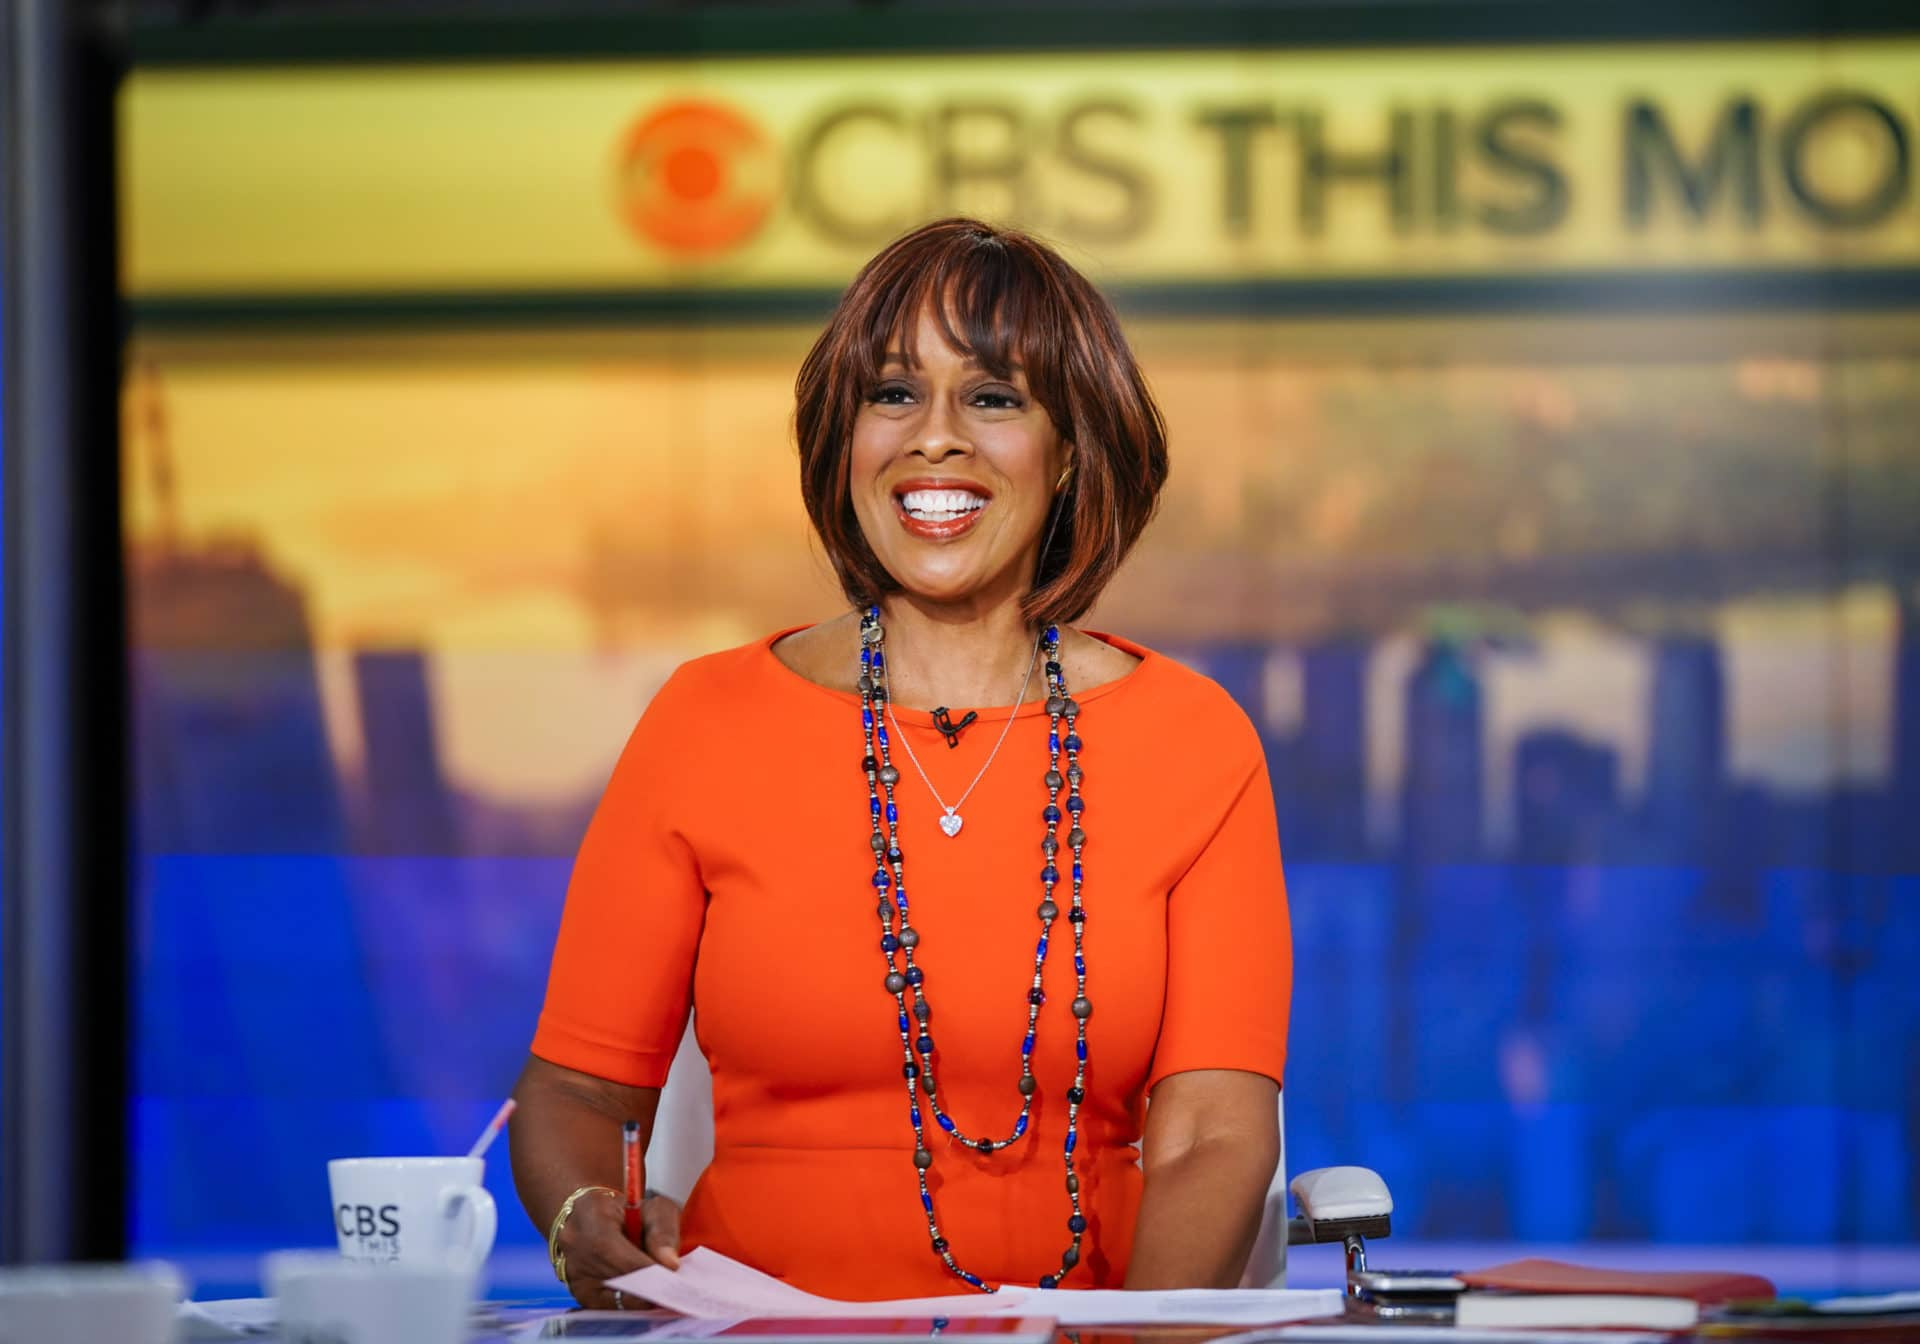 The Receipts: 5 Reasons Why Gayle King Deserves Her Multimillion Dollar Deal